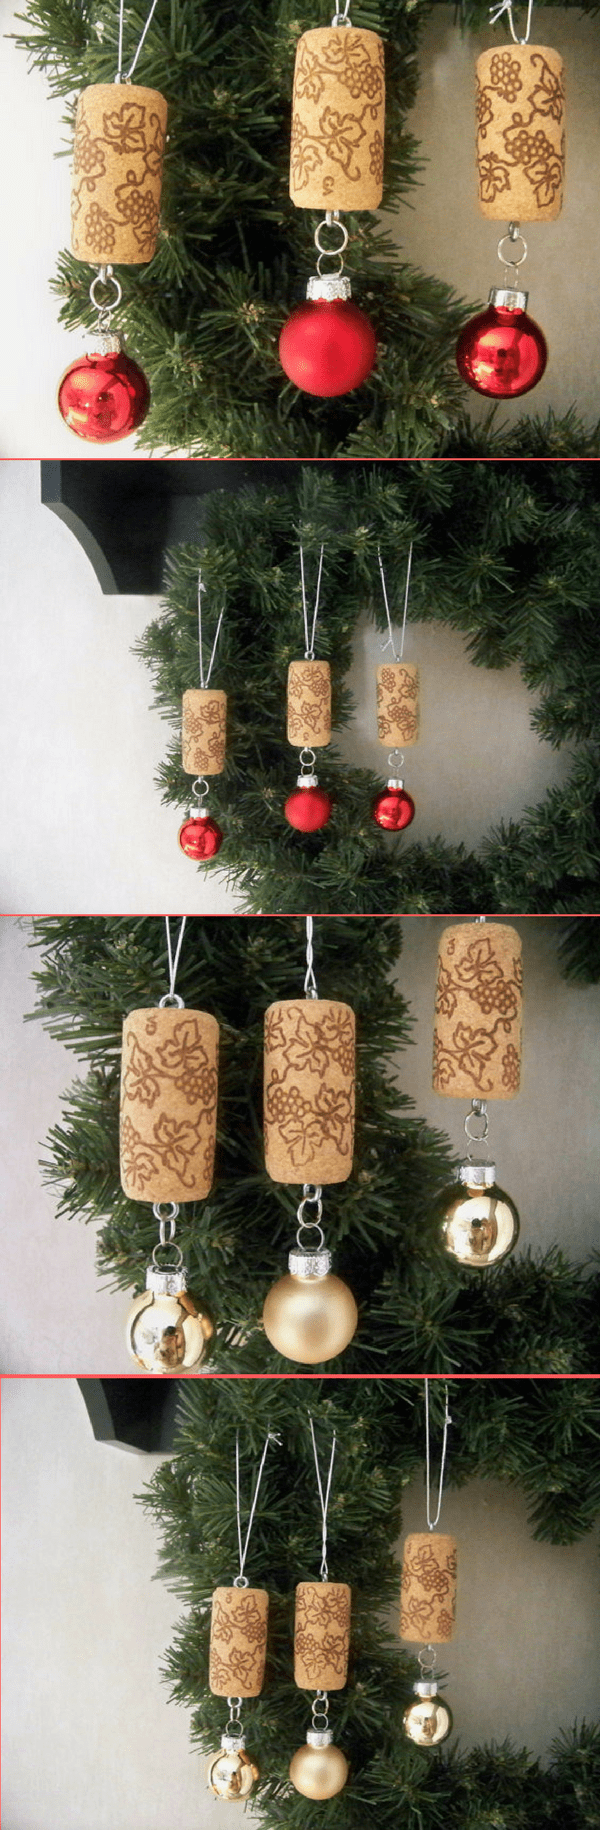 Decoration exterieur de noel a faire soi meme - Decoration de noel pour table a faire soi meme ...